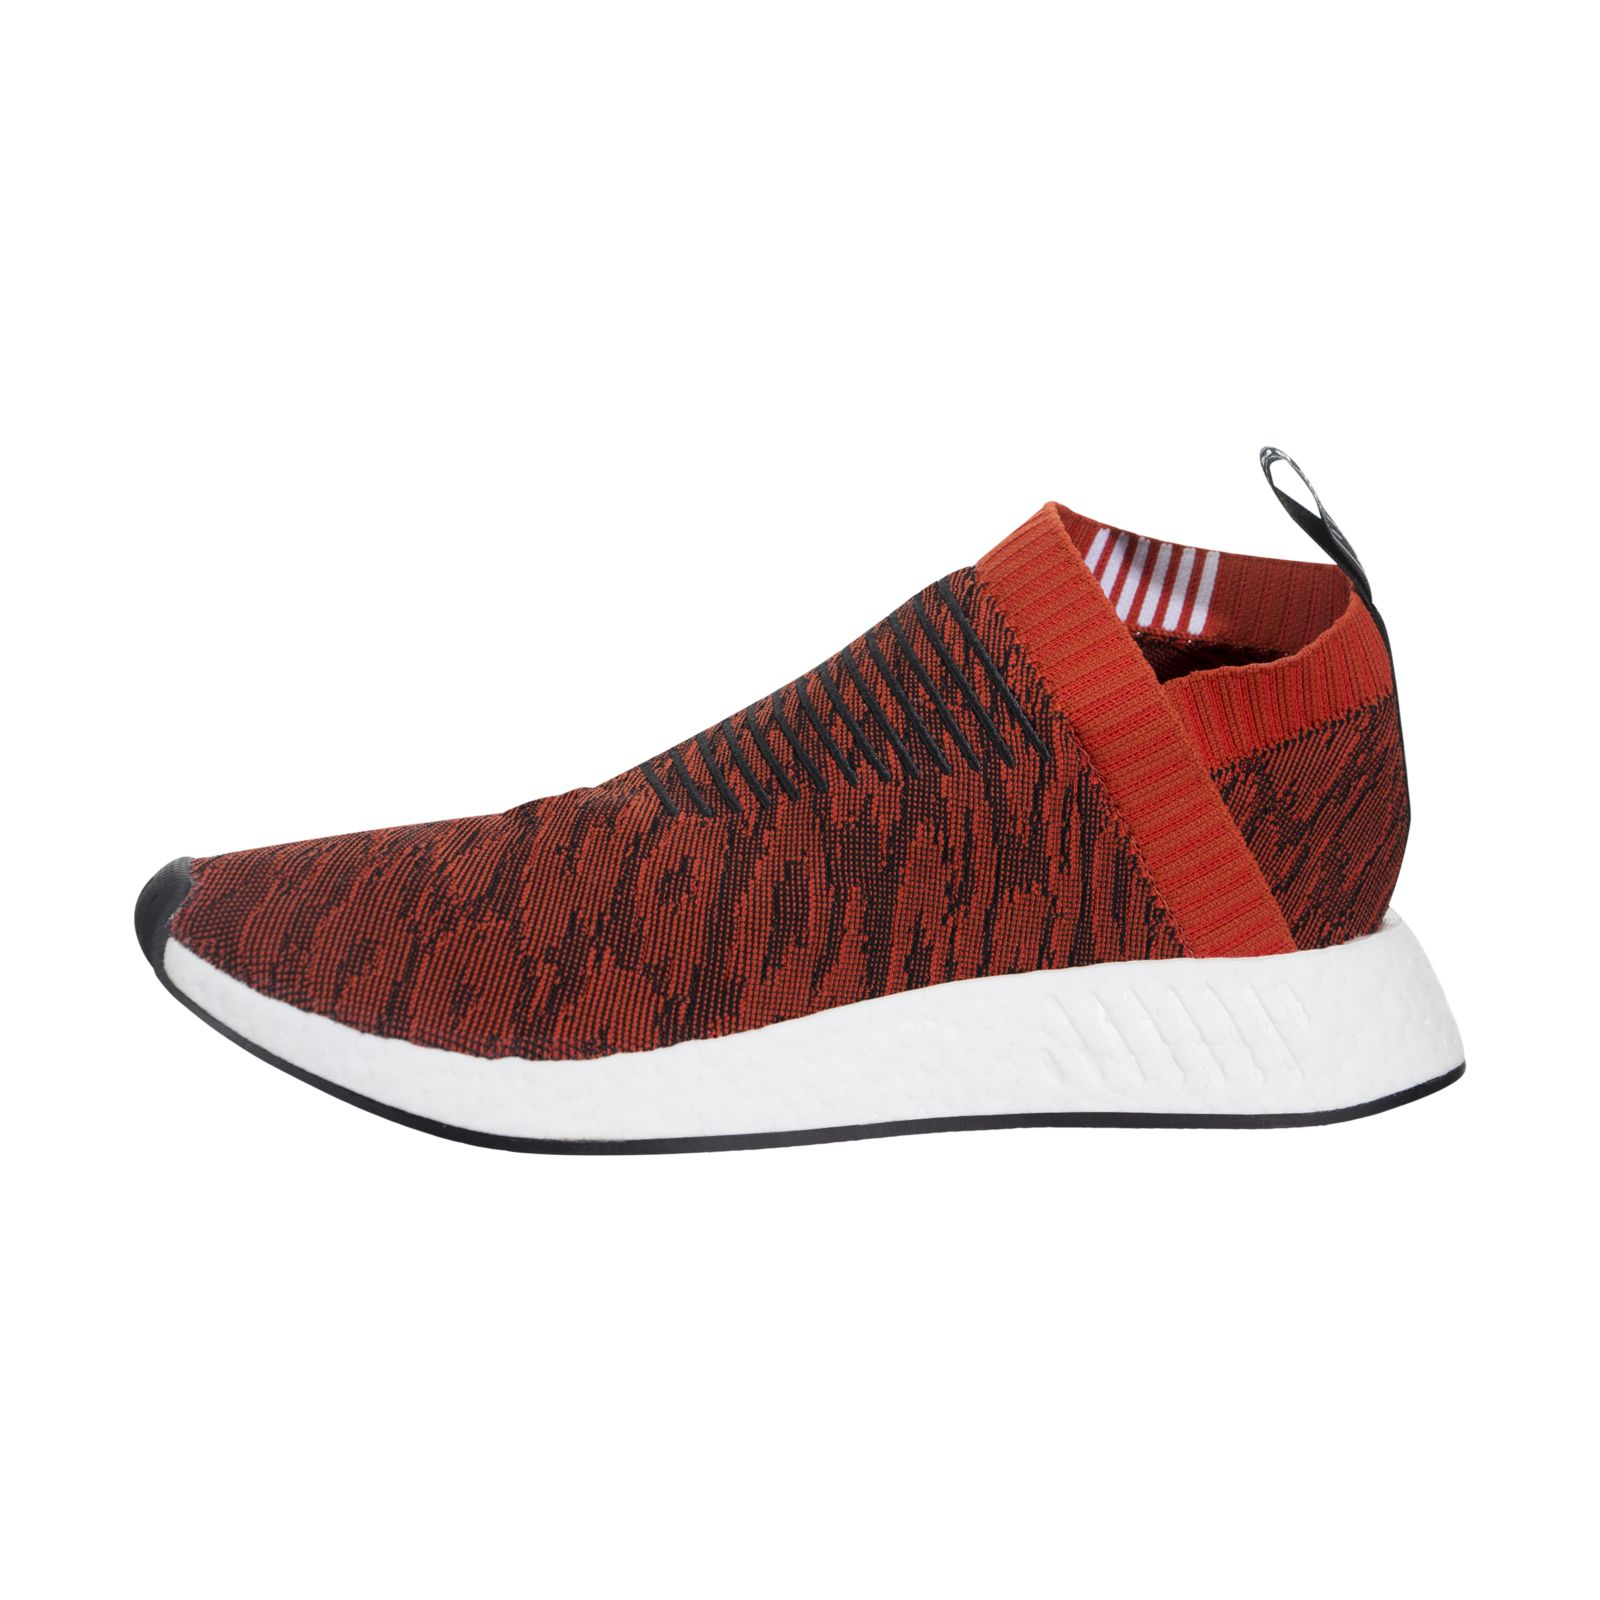 c61a2e3d3559f Image is loading Adidas-NMD-CS2-Primeknit-by9406